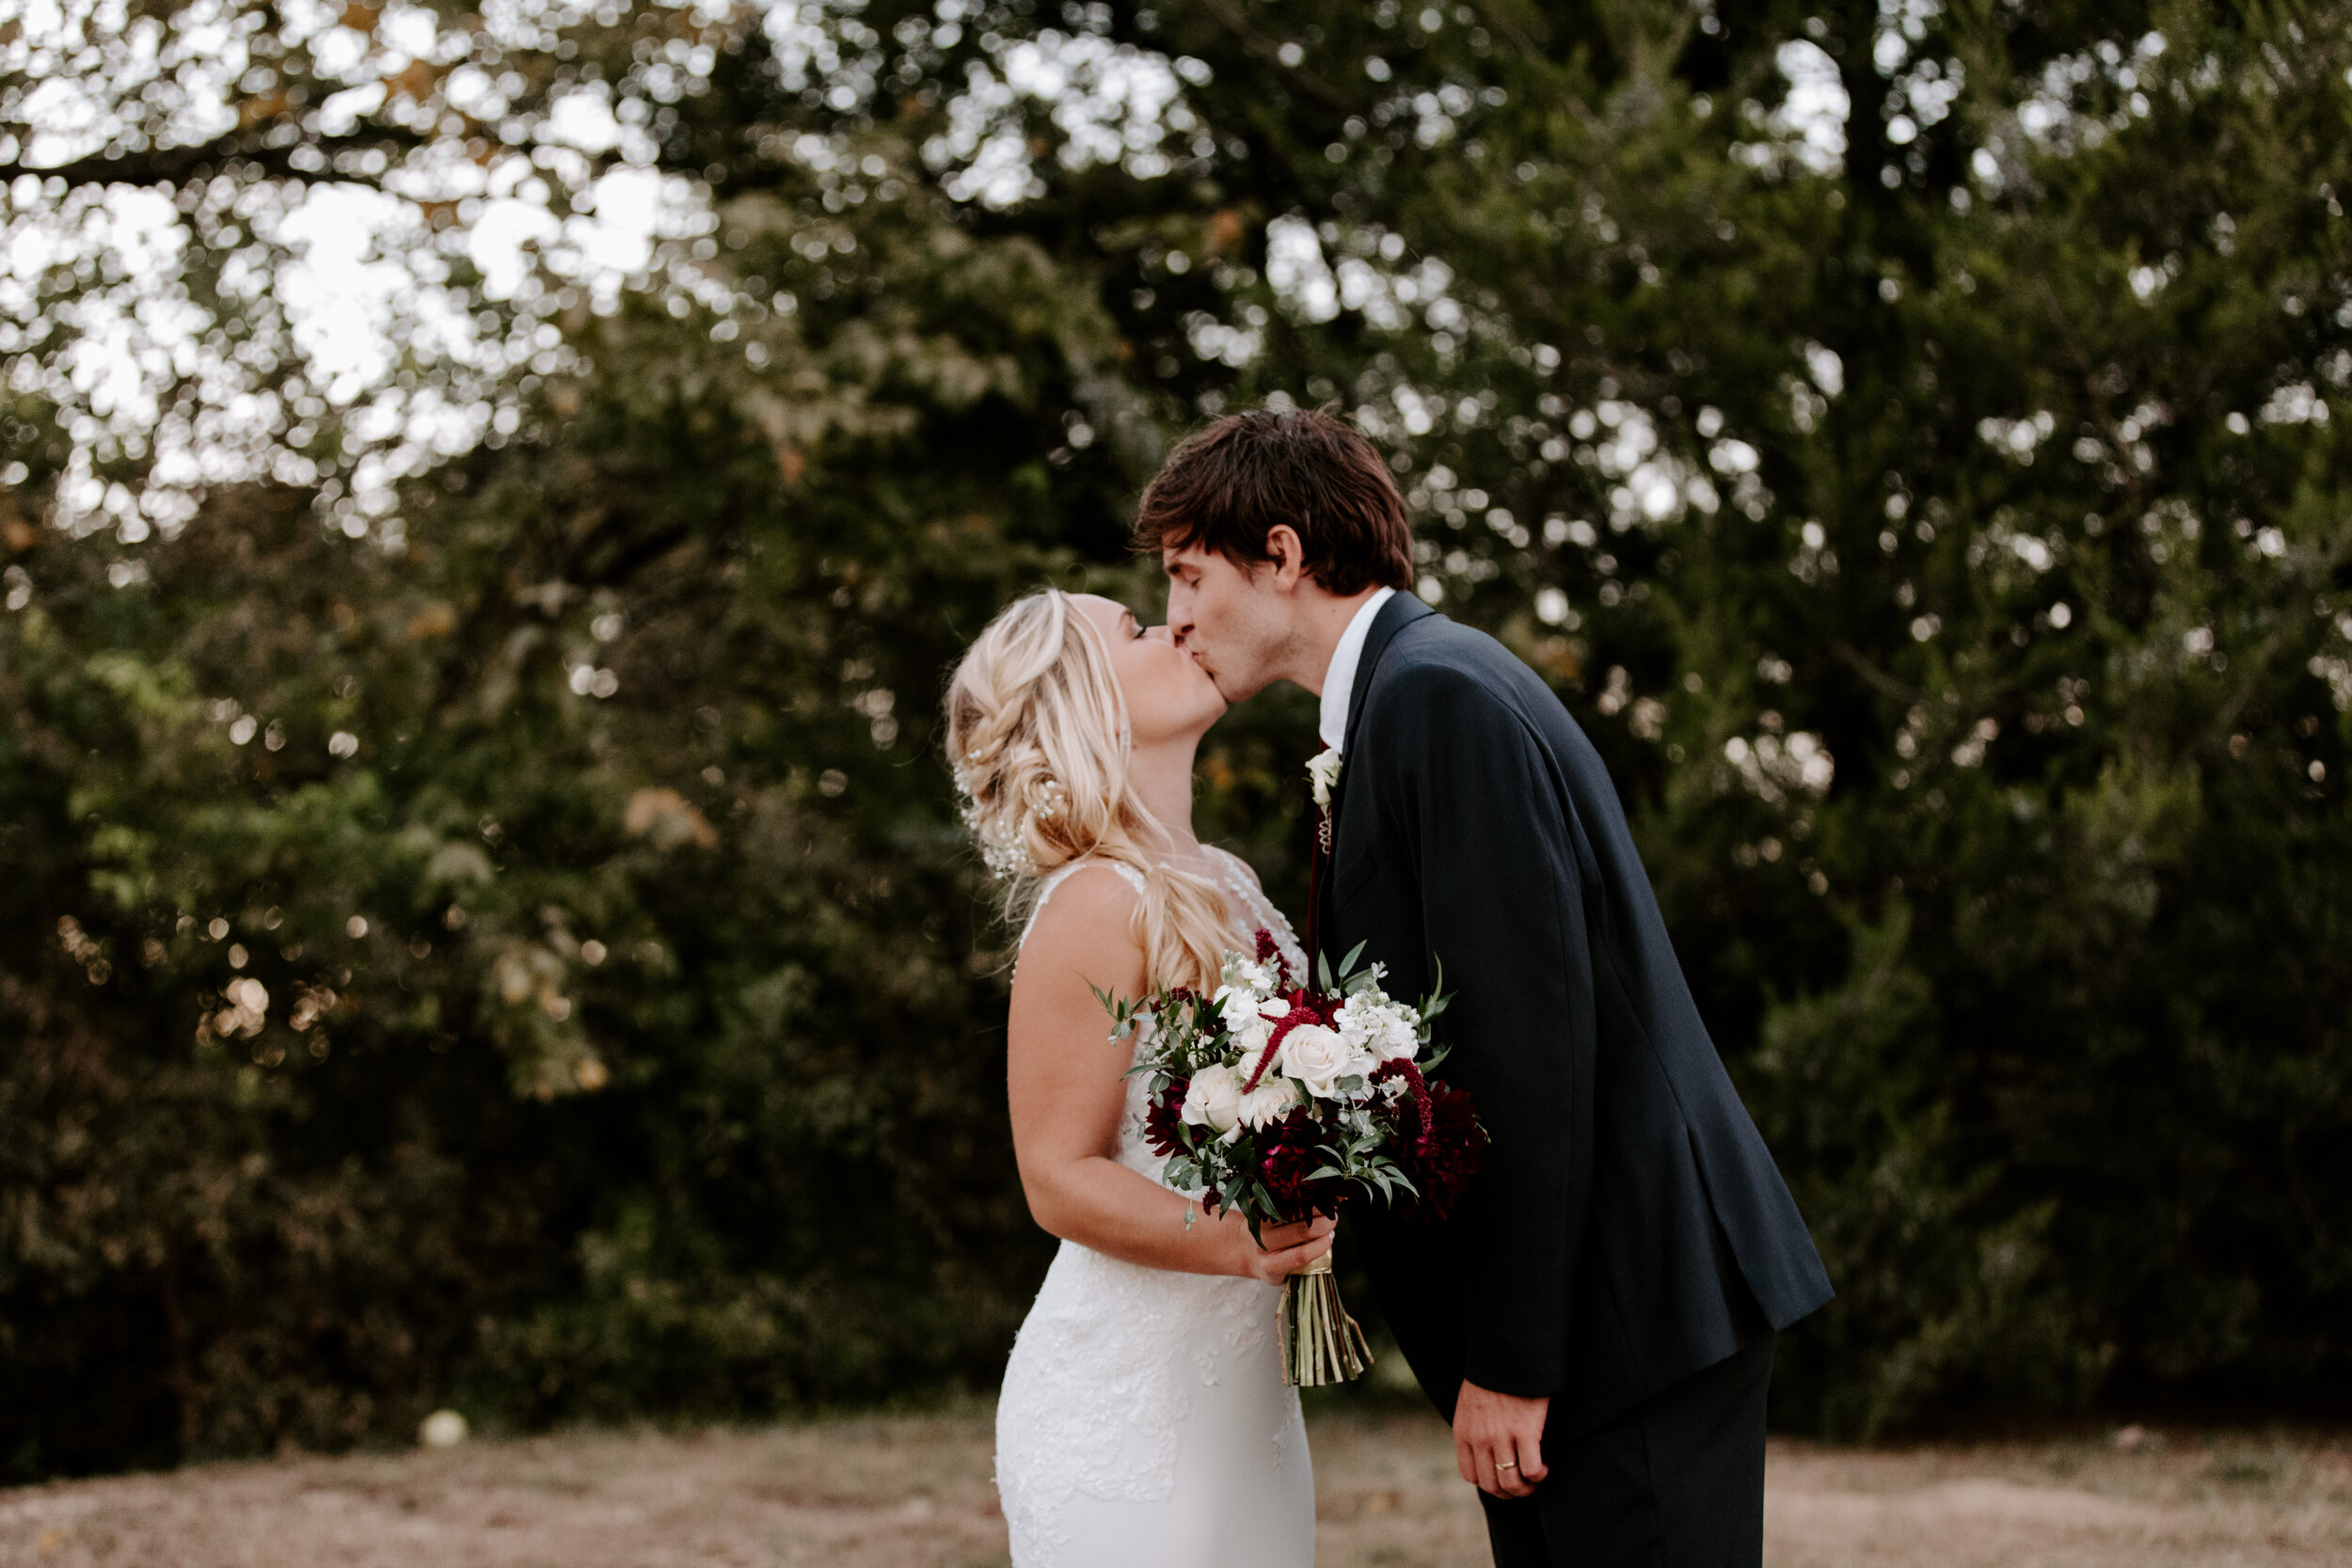 Wedding Bealls - The Beall Wedding - Gabby and Daren - Meme Urbane Photography_-12.jpg